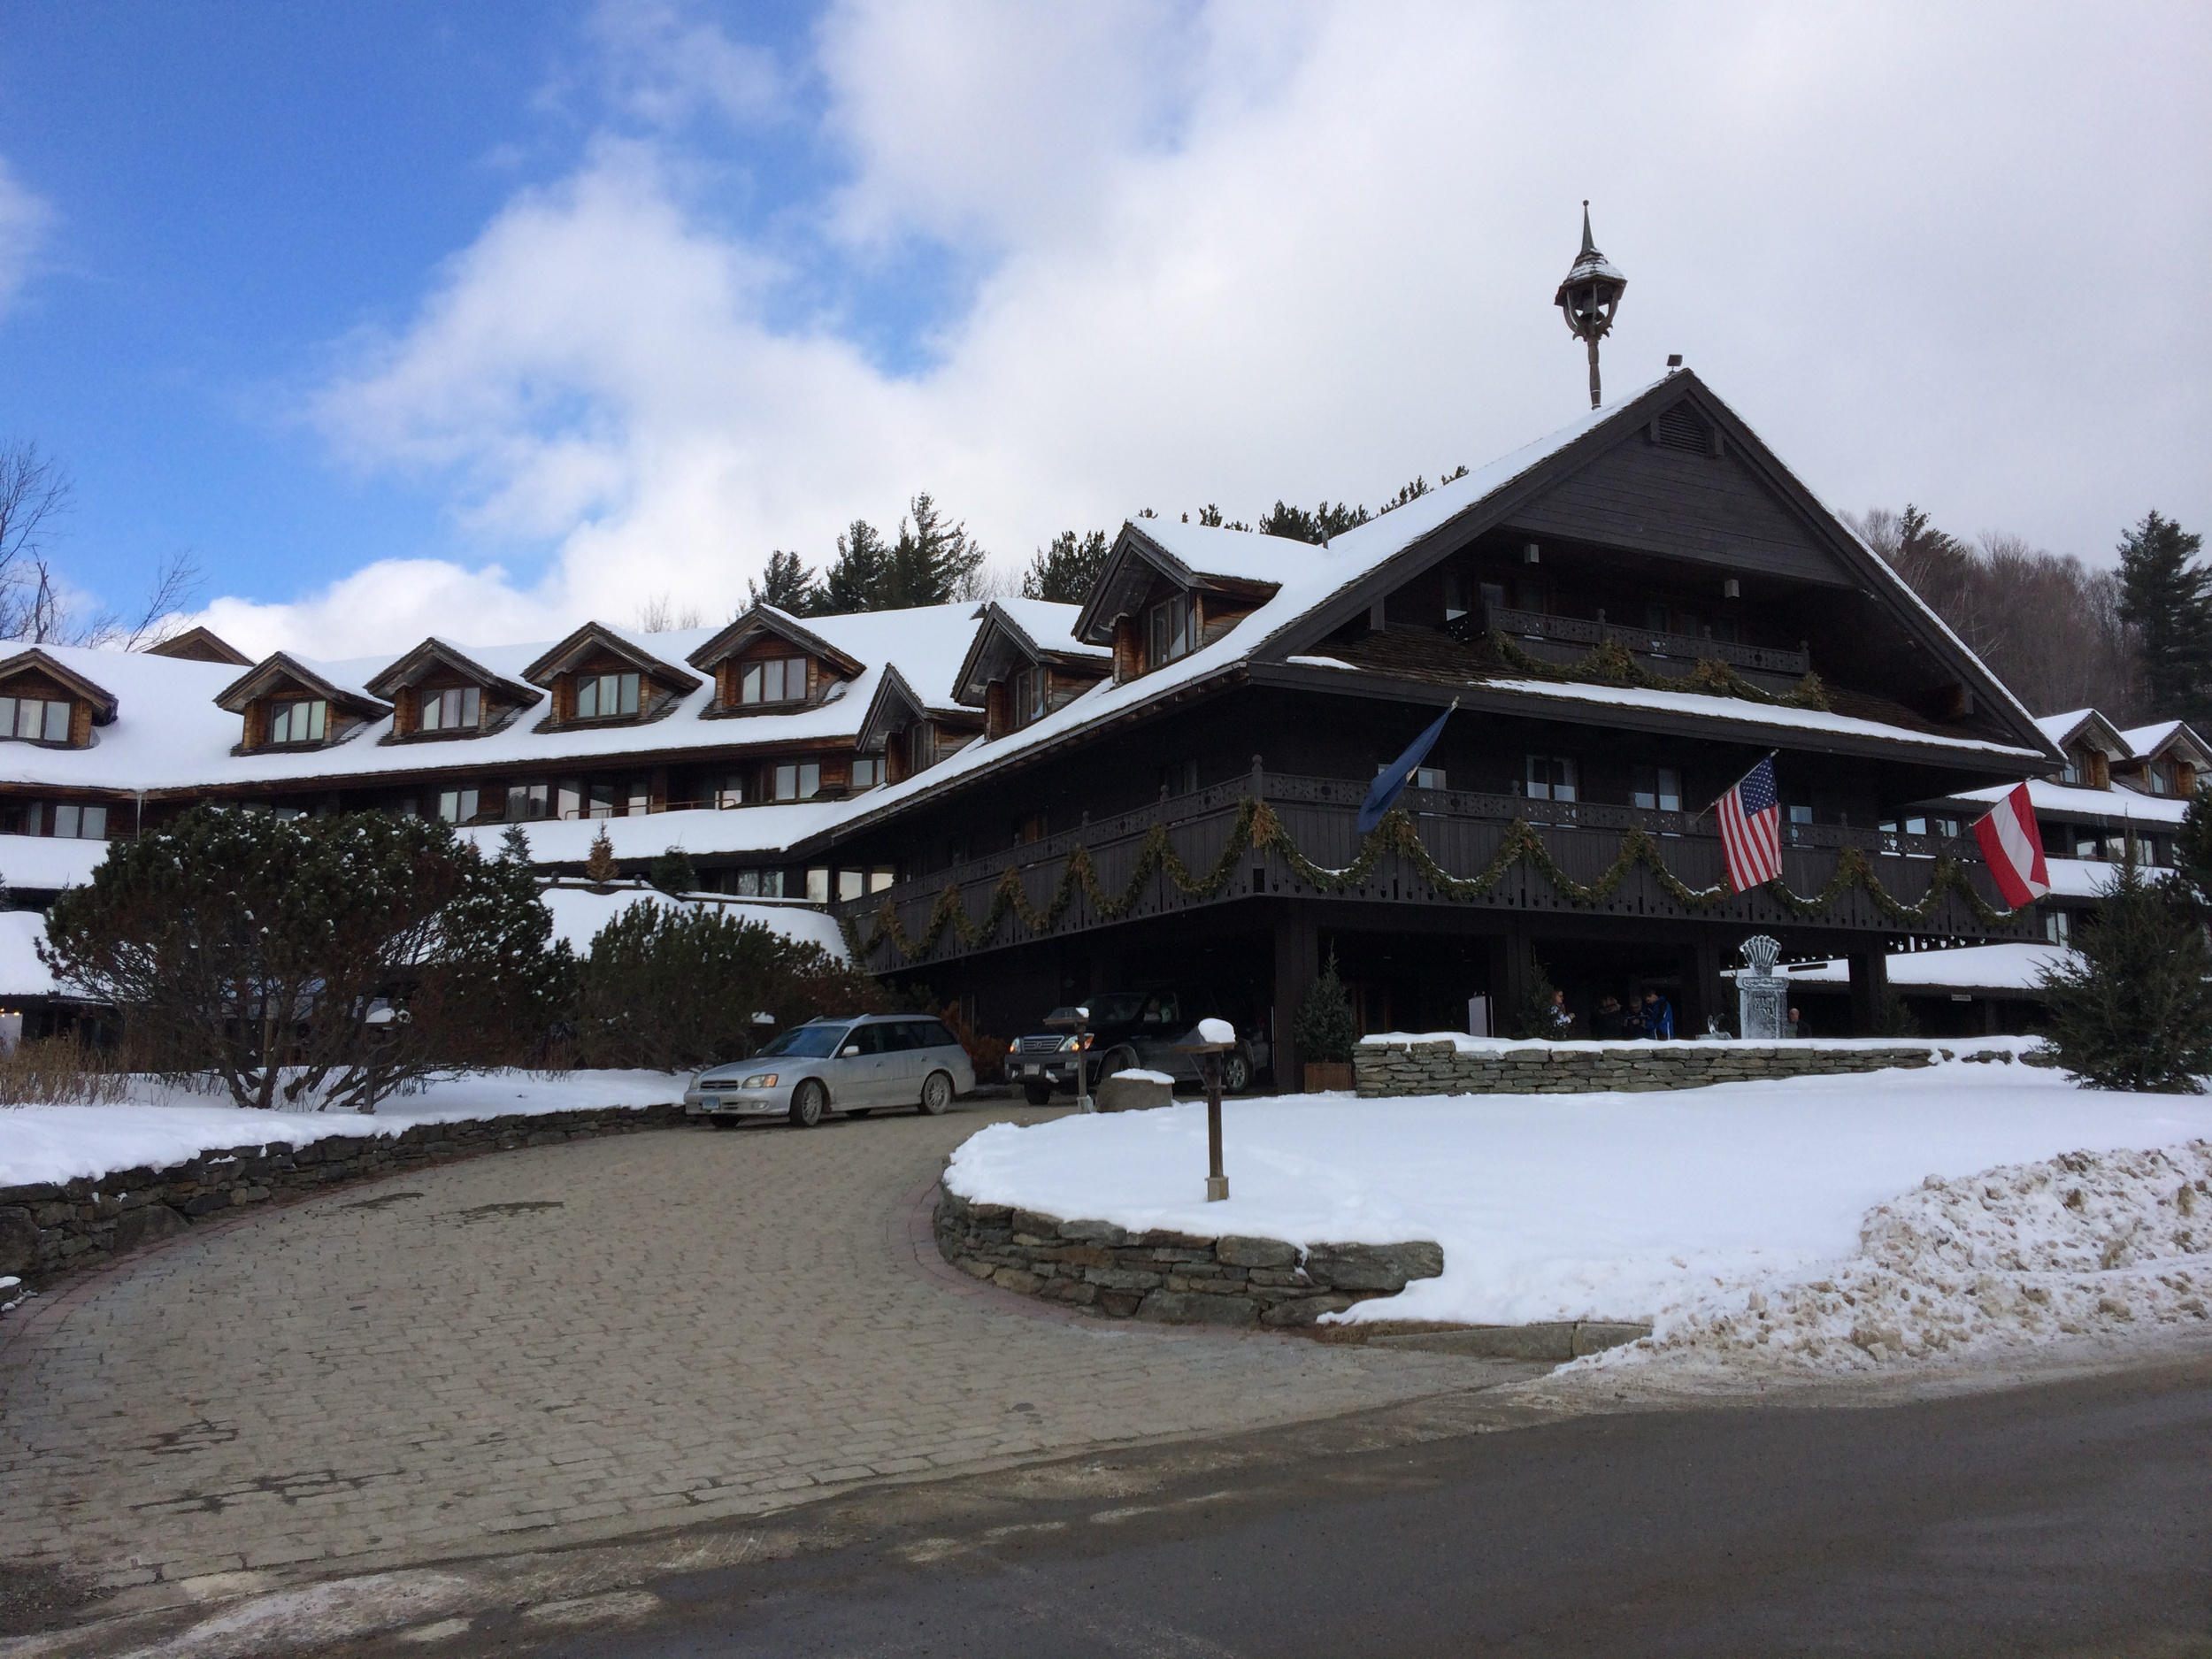 Trapp Family Lodge in Stowe, Vermont